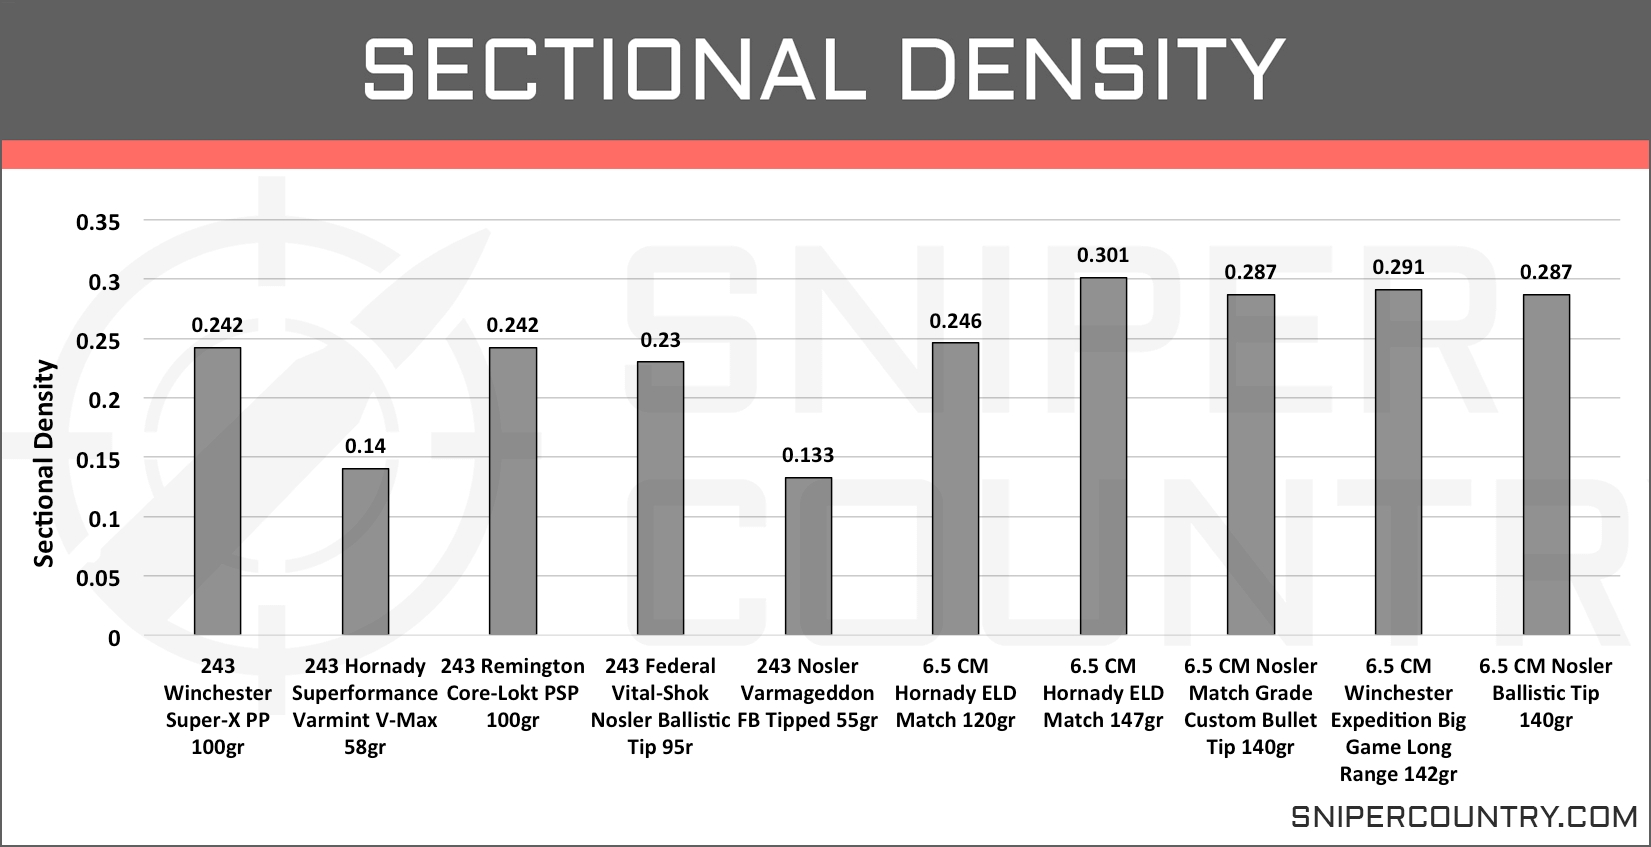 Sectional Density 6.5 Creedmoor vs .243 Win